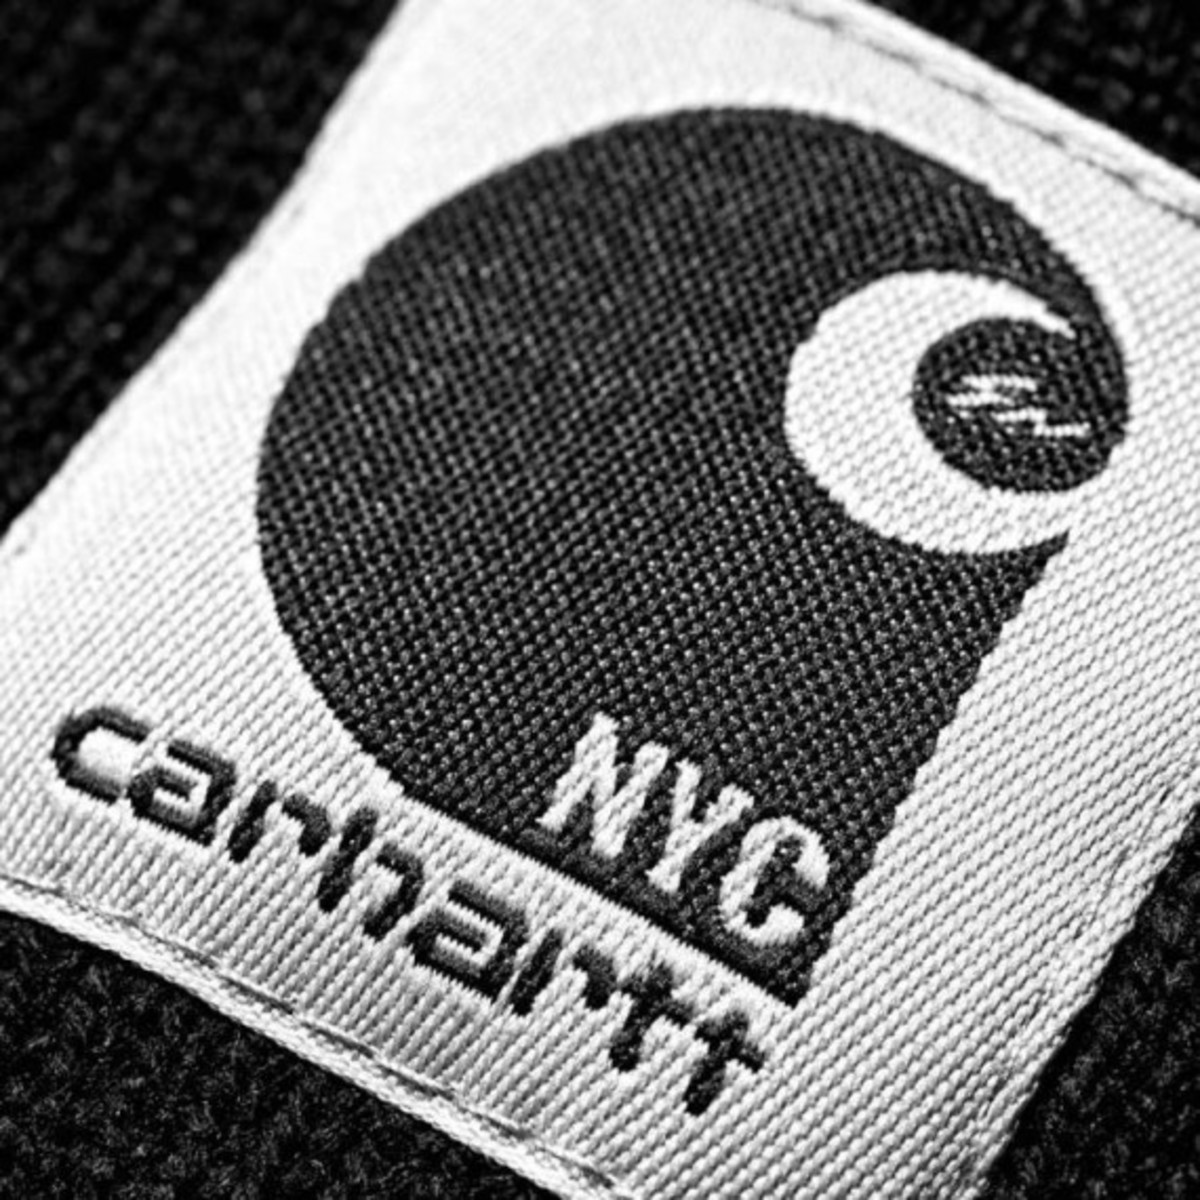 carhartt-wip-fragment-design-nyc-20